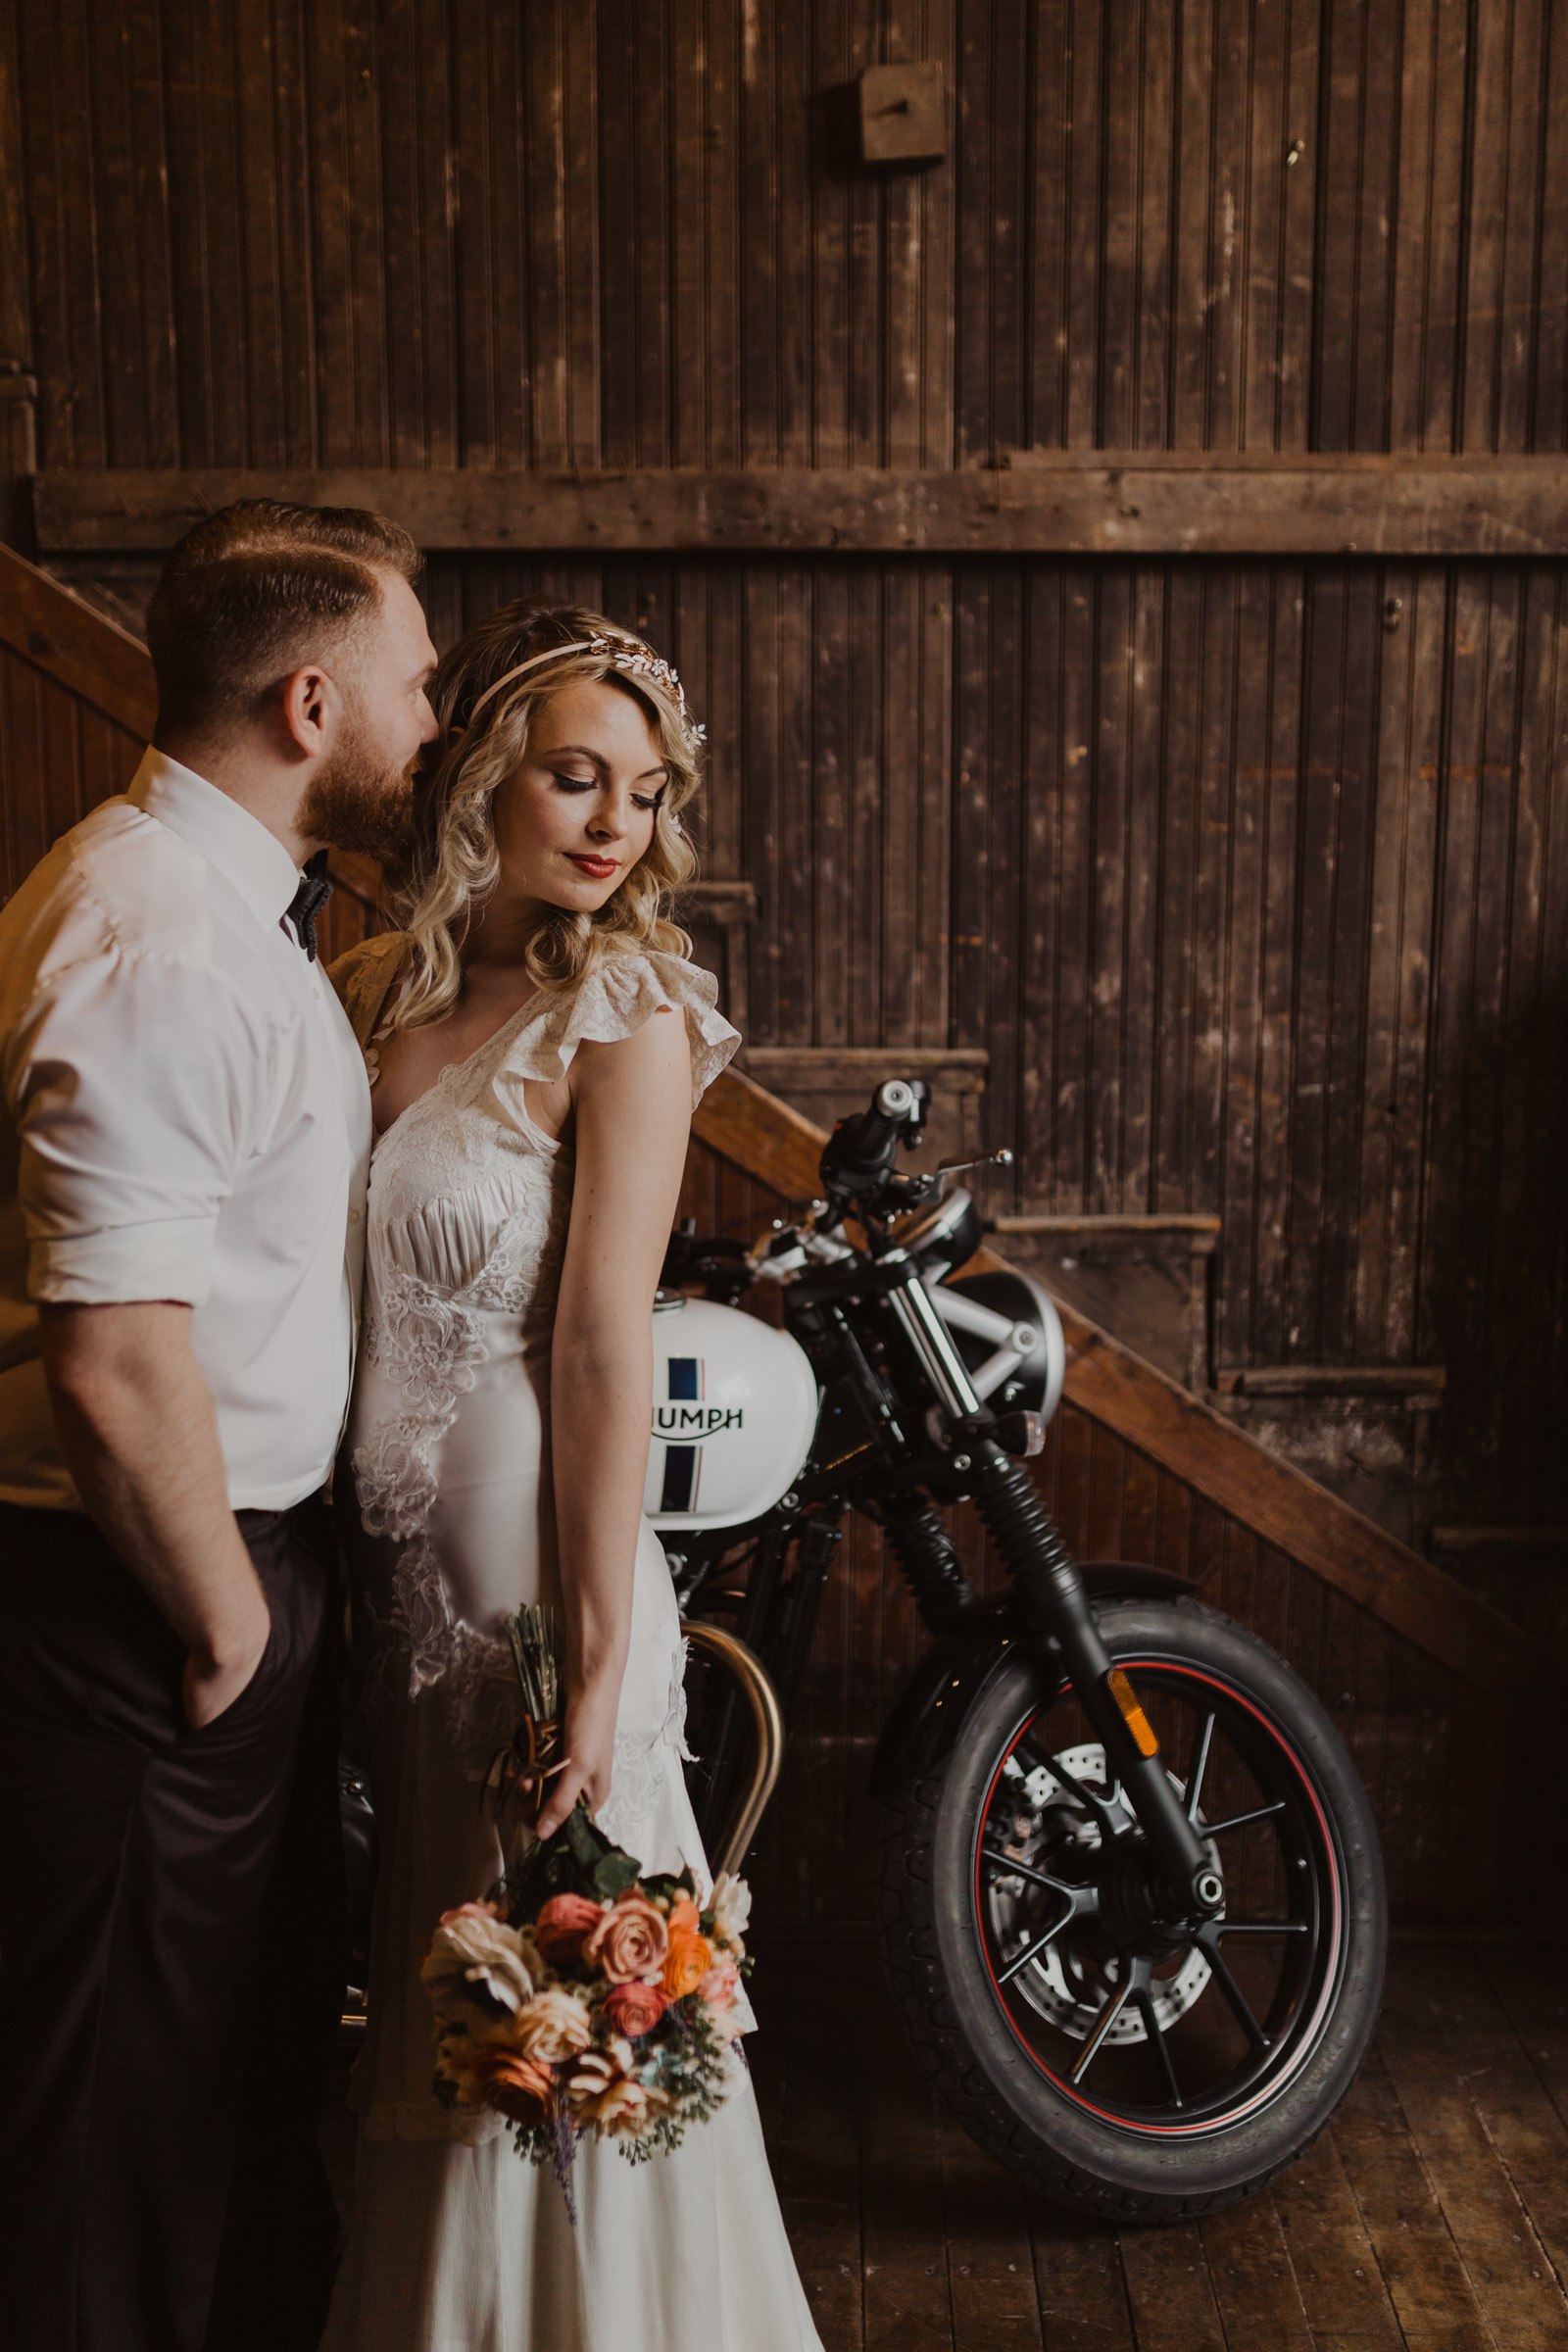 alyssa barletter photography styled shoot wedding inspiration kansas city west bottoms photographer motorcycle edgy intimate-20.jpg